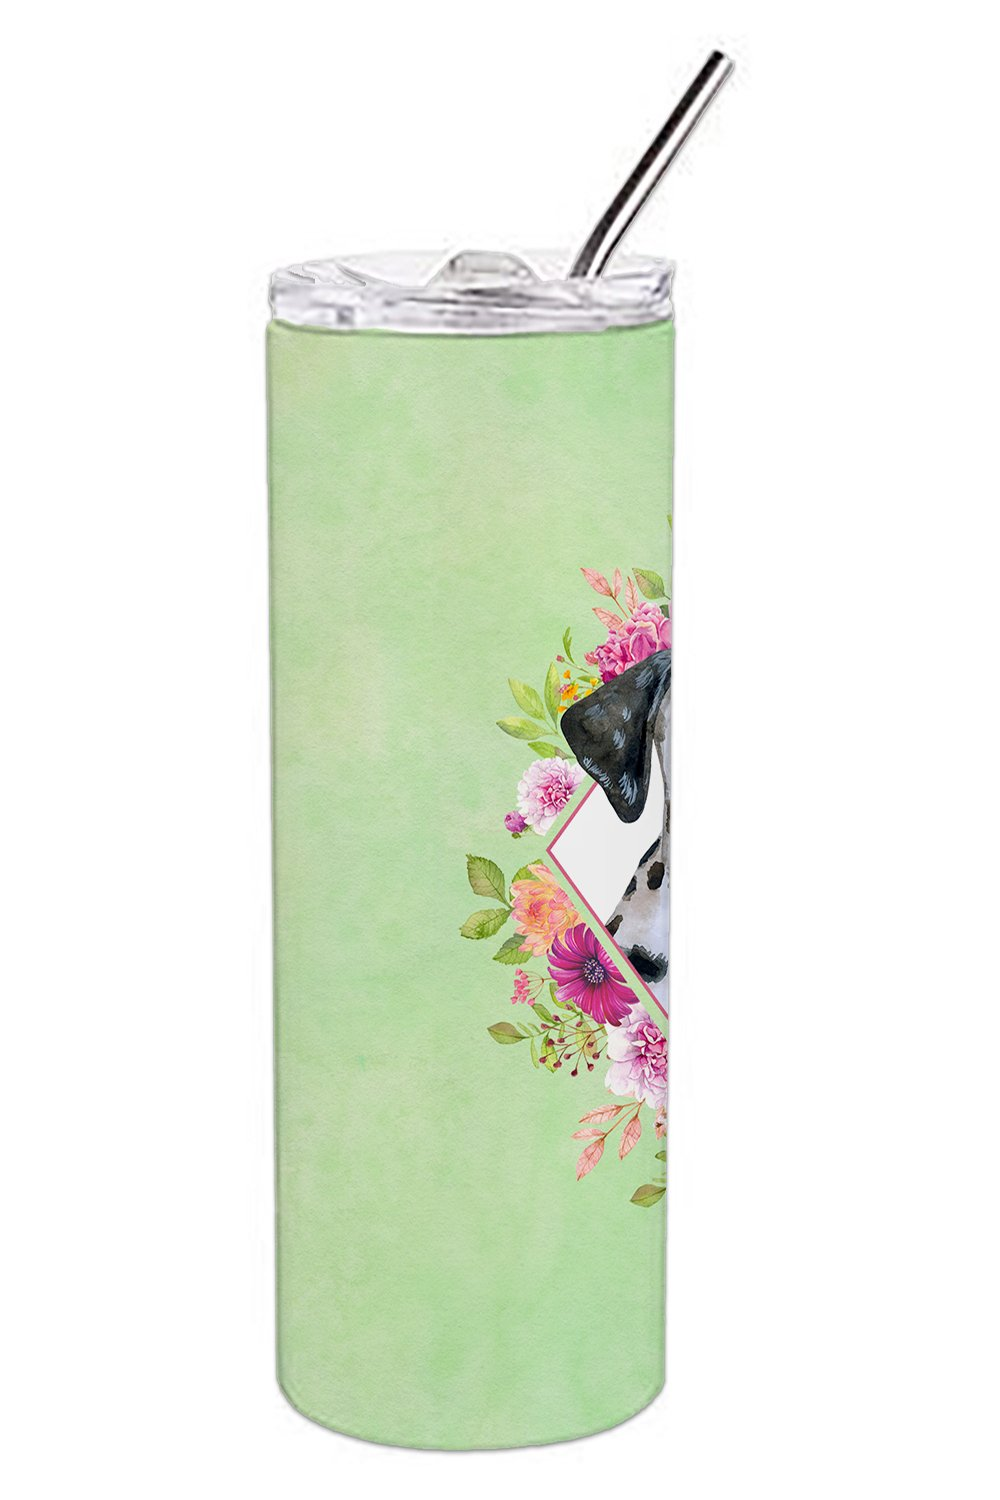 Dalmatian Puppy Green Flowers Double Walled Stainless Steel 20 oz Skinny Tumbler CK4296TBL20 by Caroline's Treasures